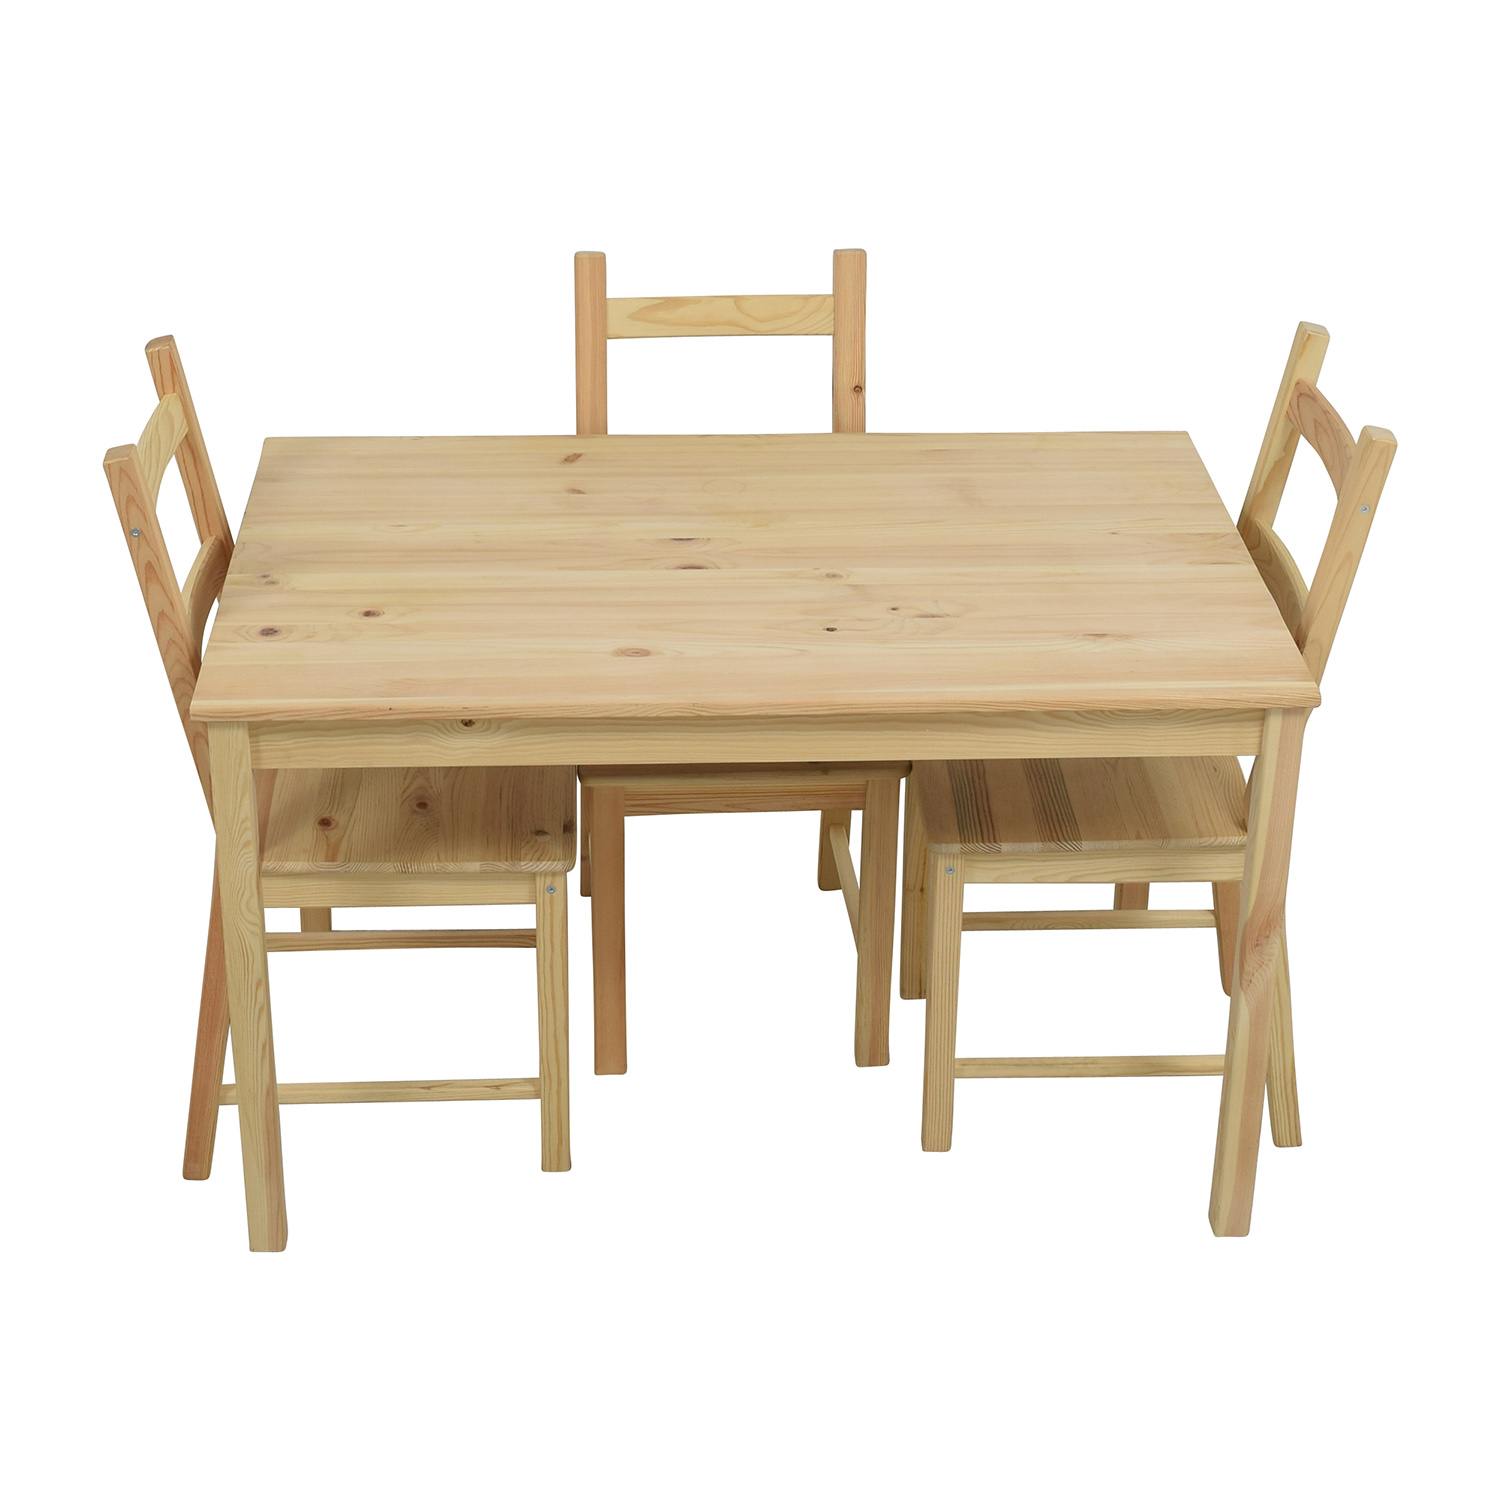 Ikea Ingo Pine Table With Ivar Chairs On